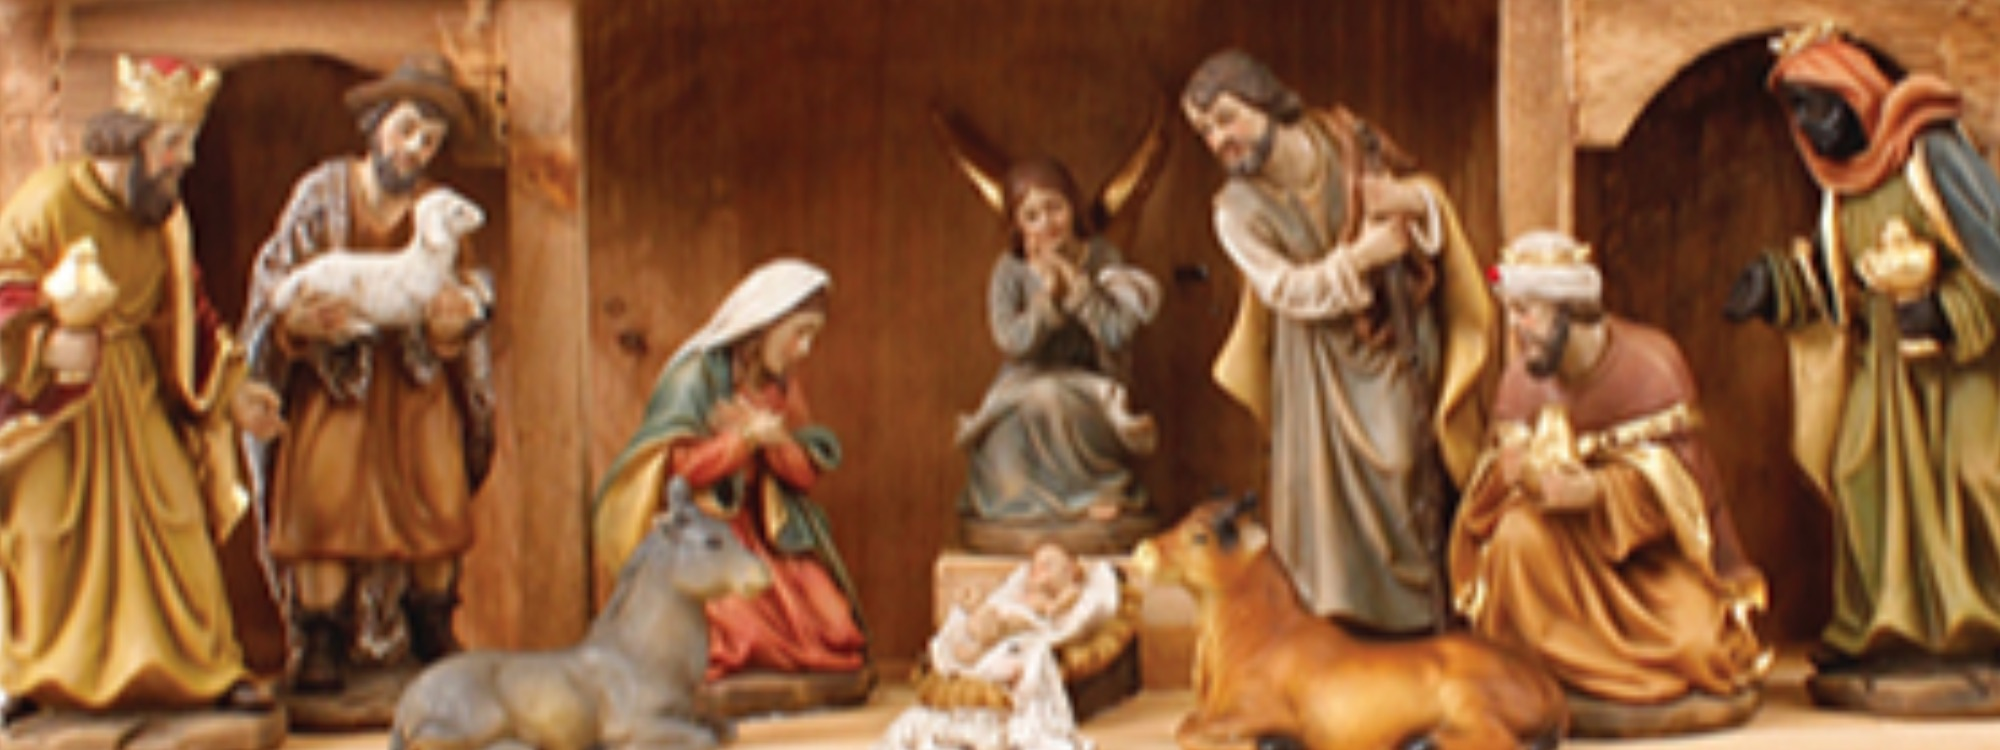 St Wulstan's & St Edmund's Parish ~REPOSITORY~  *CHRISTMAS NATIVITIES, CARDS & GIFTS*